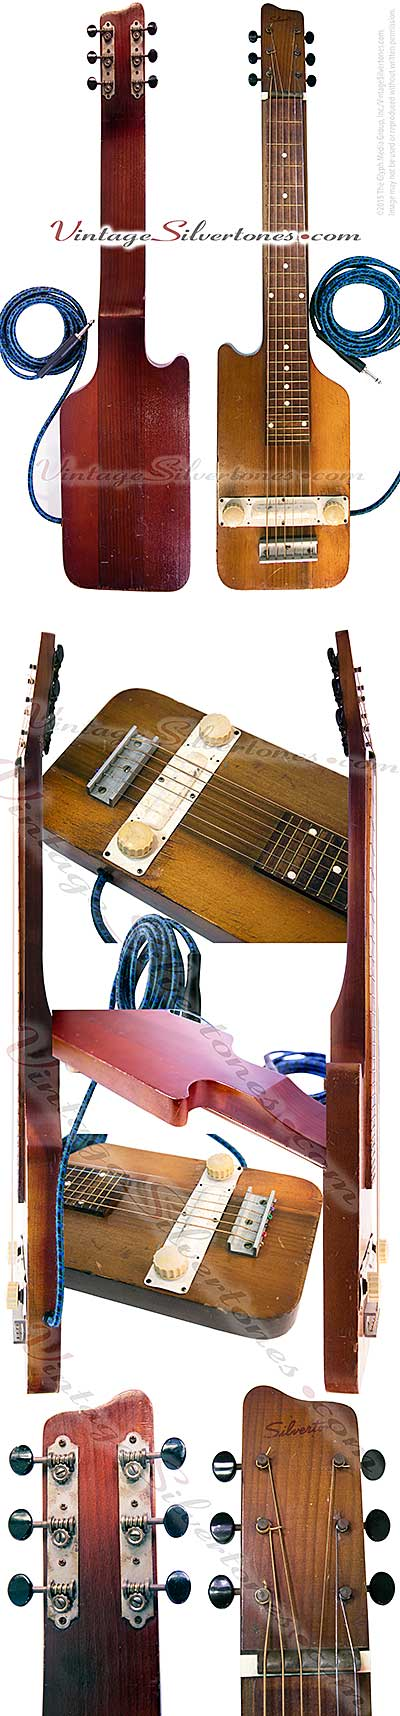 Silvertone lap steel - danelectro - 1 pickup, natural cherry finish hardwood solid body electric lap steel guitar made in Neptune, NJ USA 1953